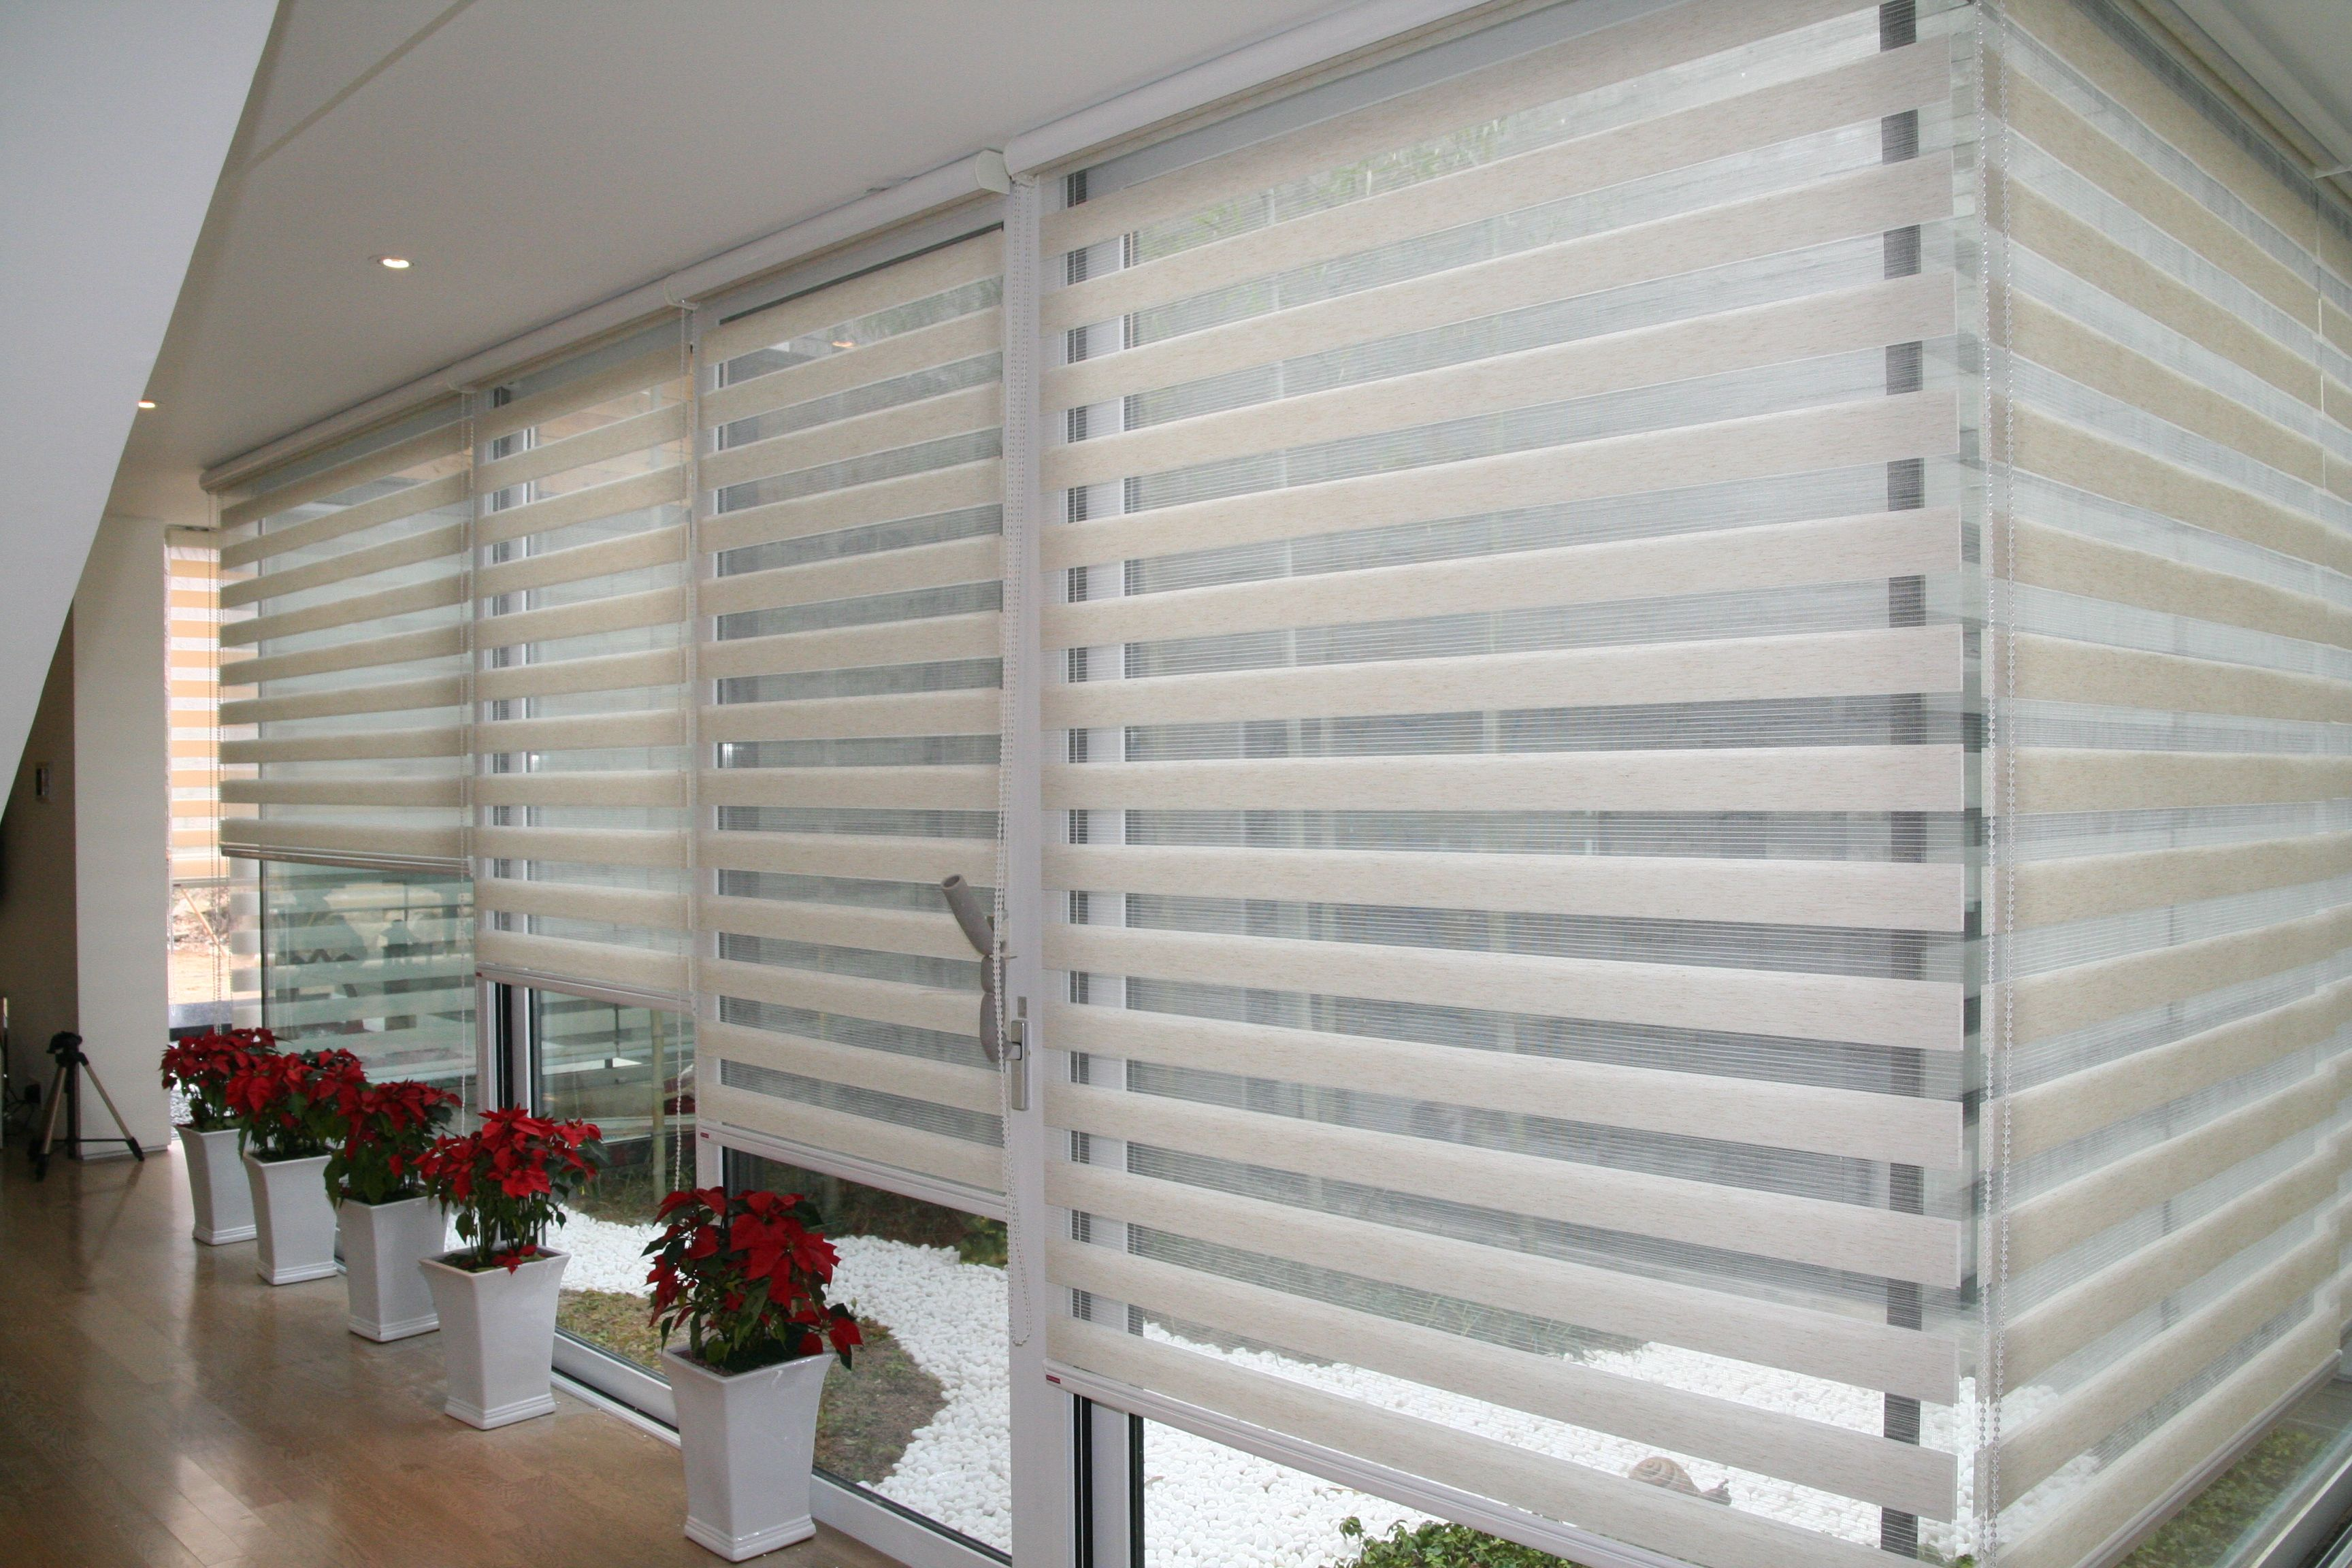 Zebra window coverings  highlites blinds shades shutters by complete window coverings inc